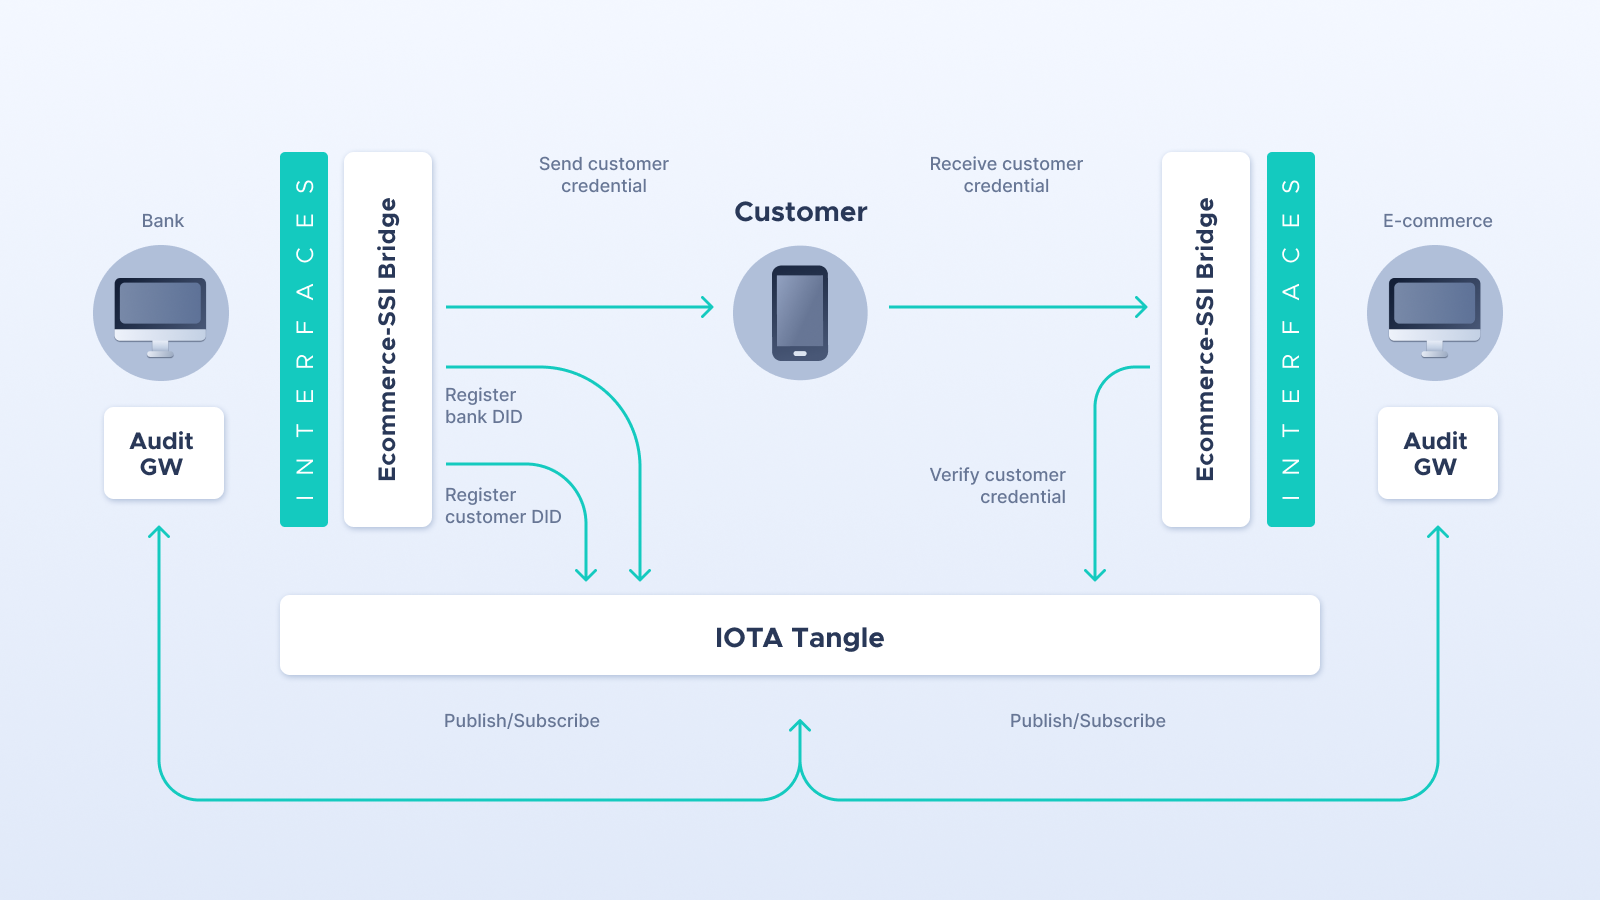 IOTA-ENSURESEC: How to make an impact in the e-commerce ecosystem